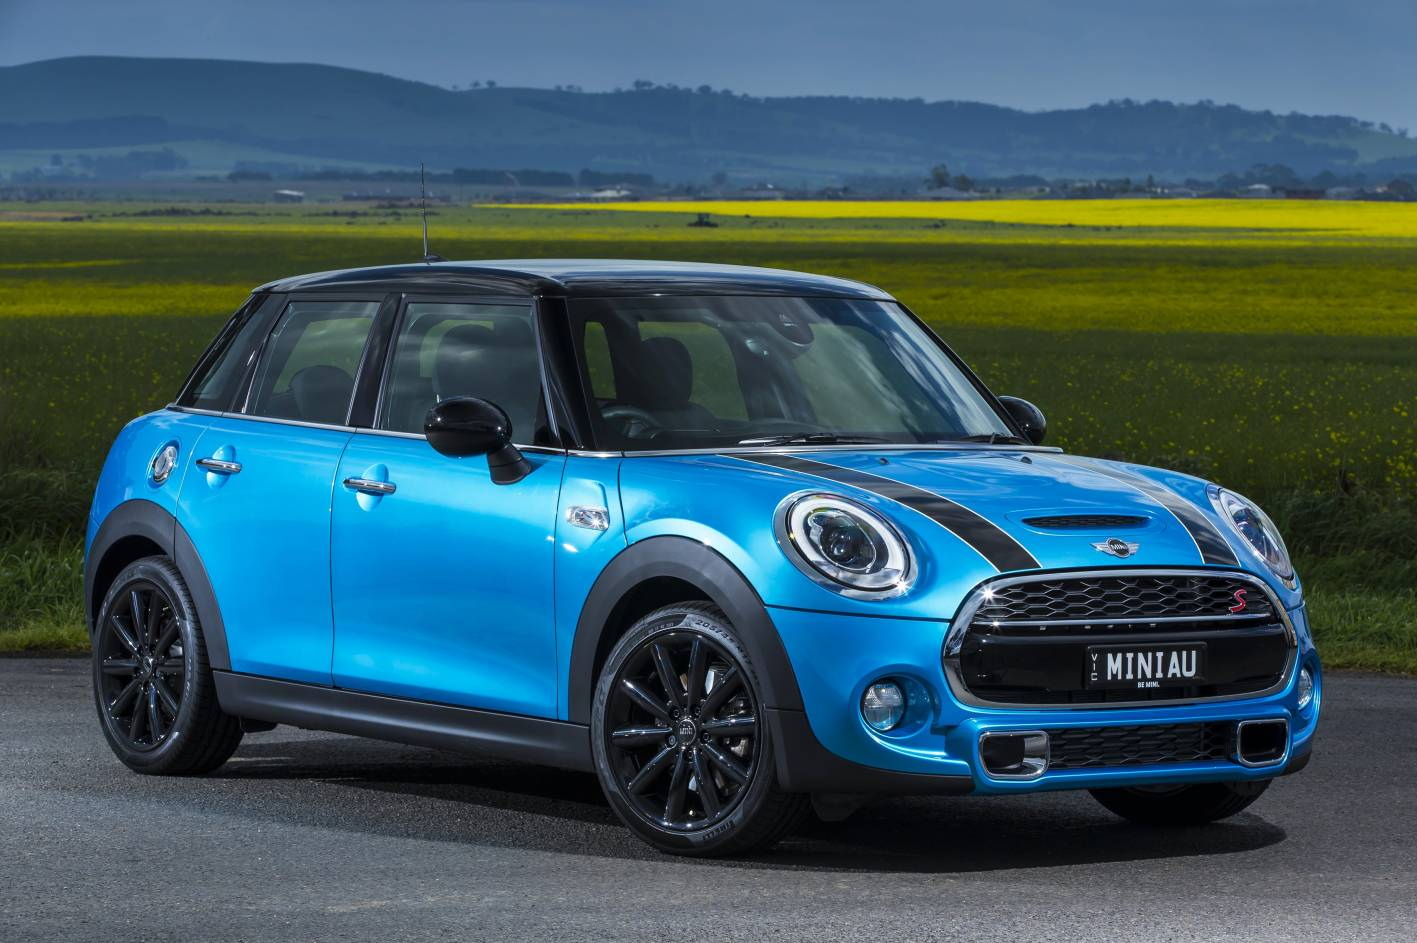 Mini Cooper Convertible For Sale >> MINI Cars - News: MINI 5-door on sale now from $27,750